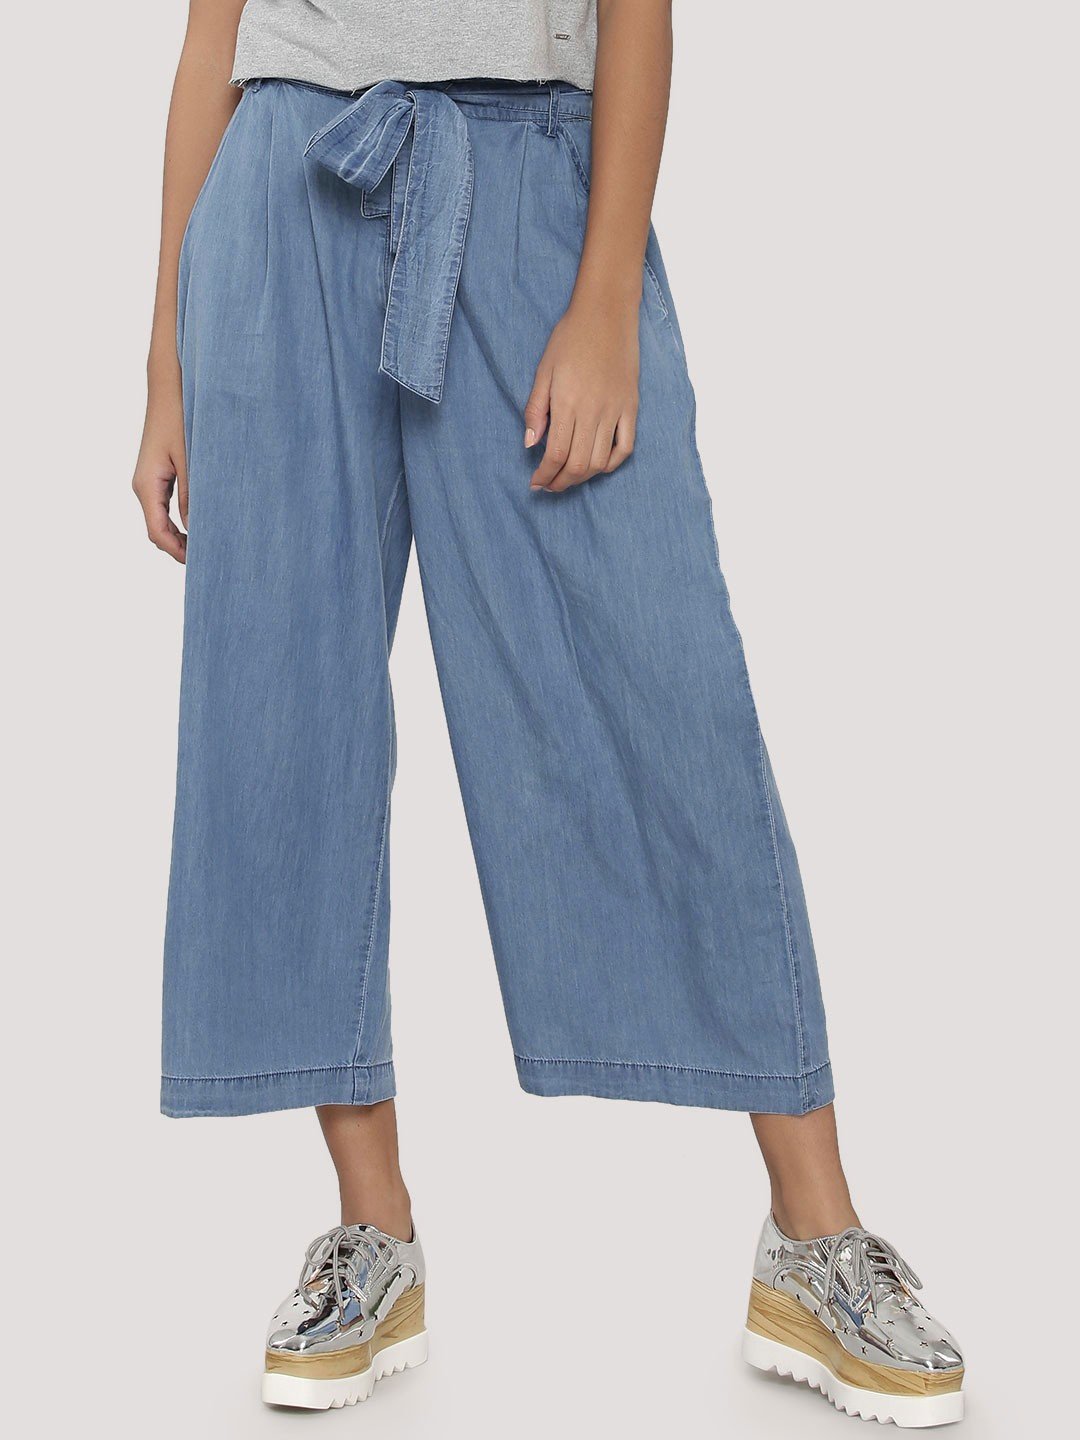 Buy KOOVS Tie Waist Denim Culottes For Women